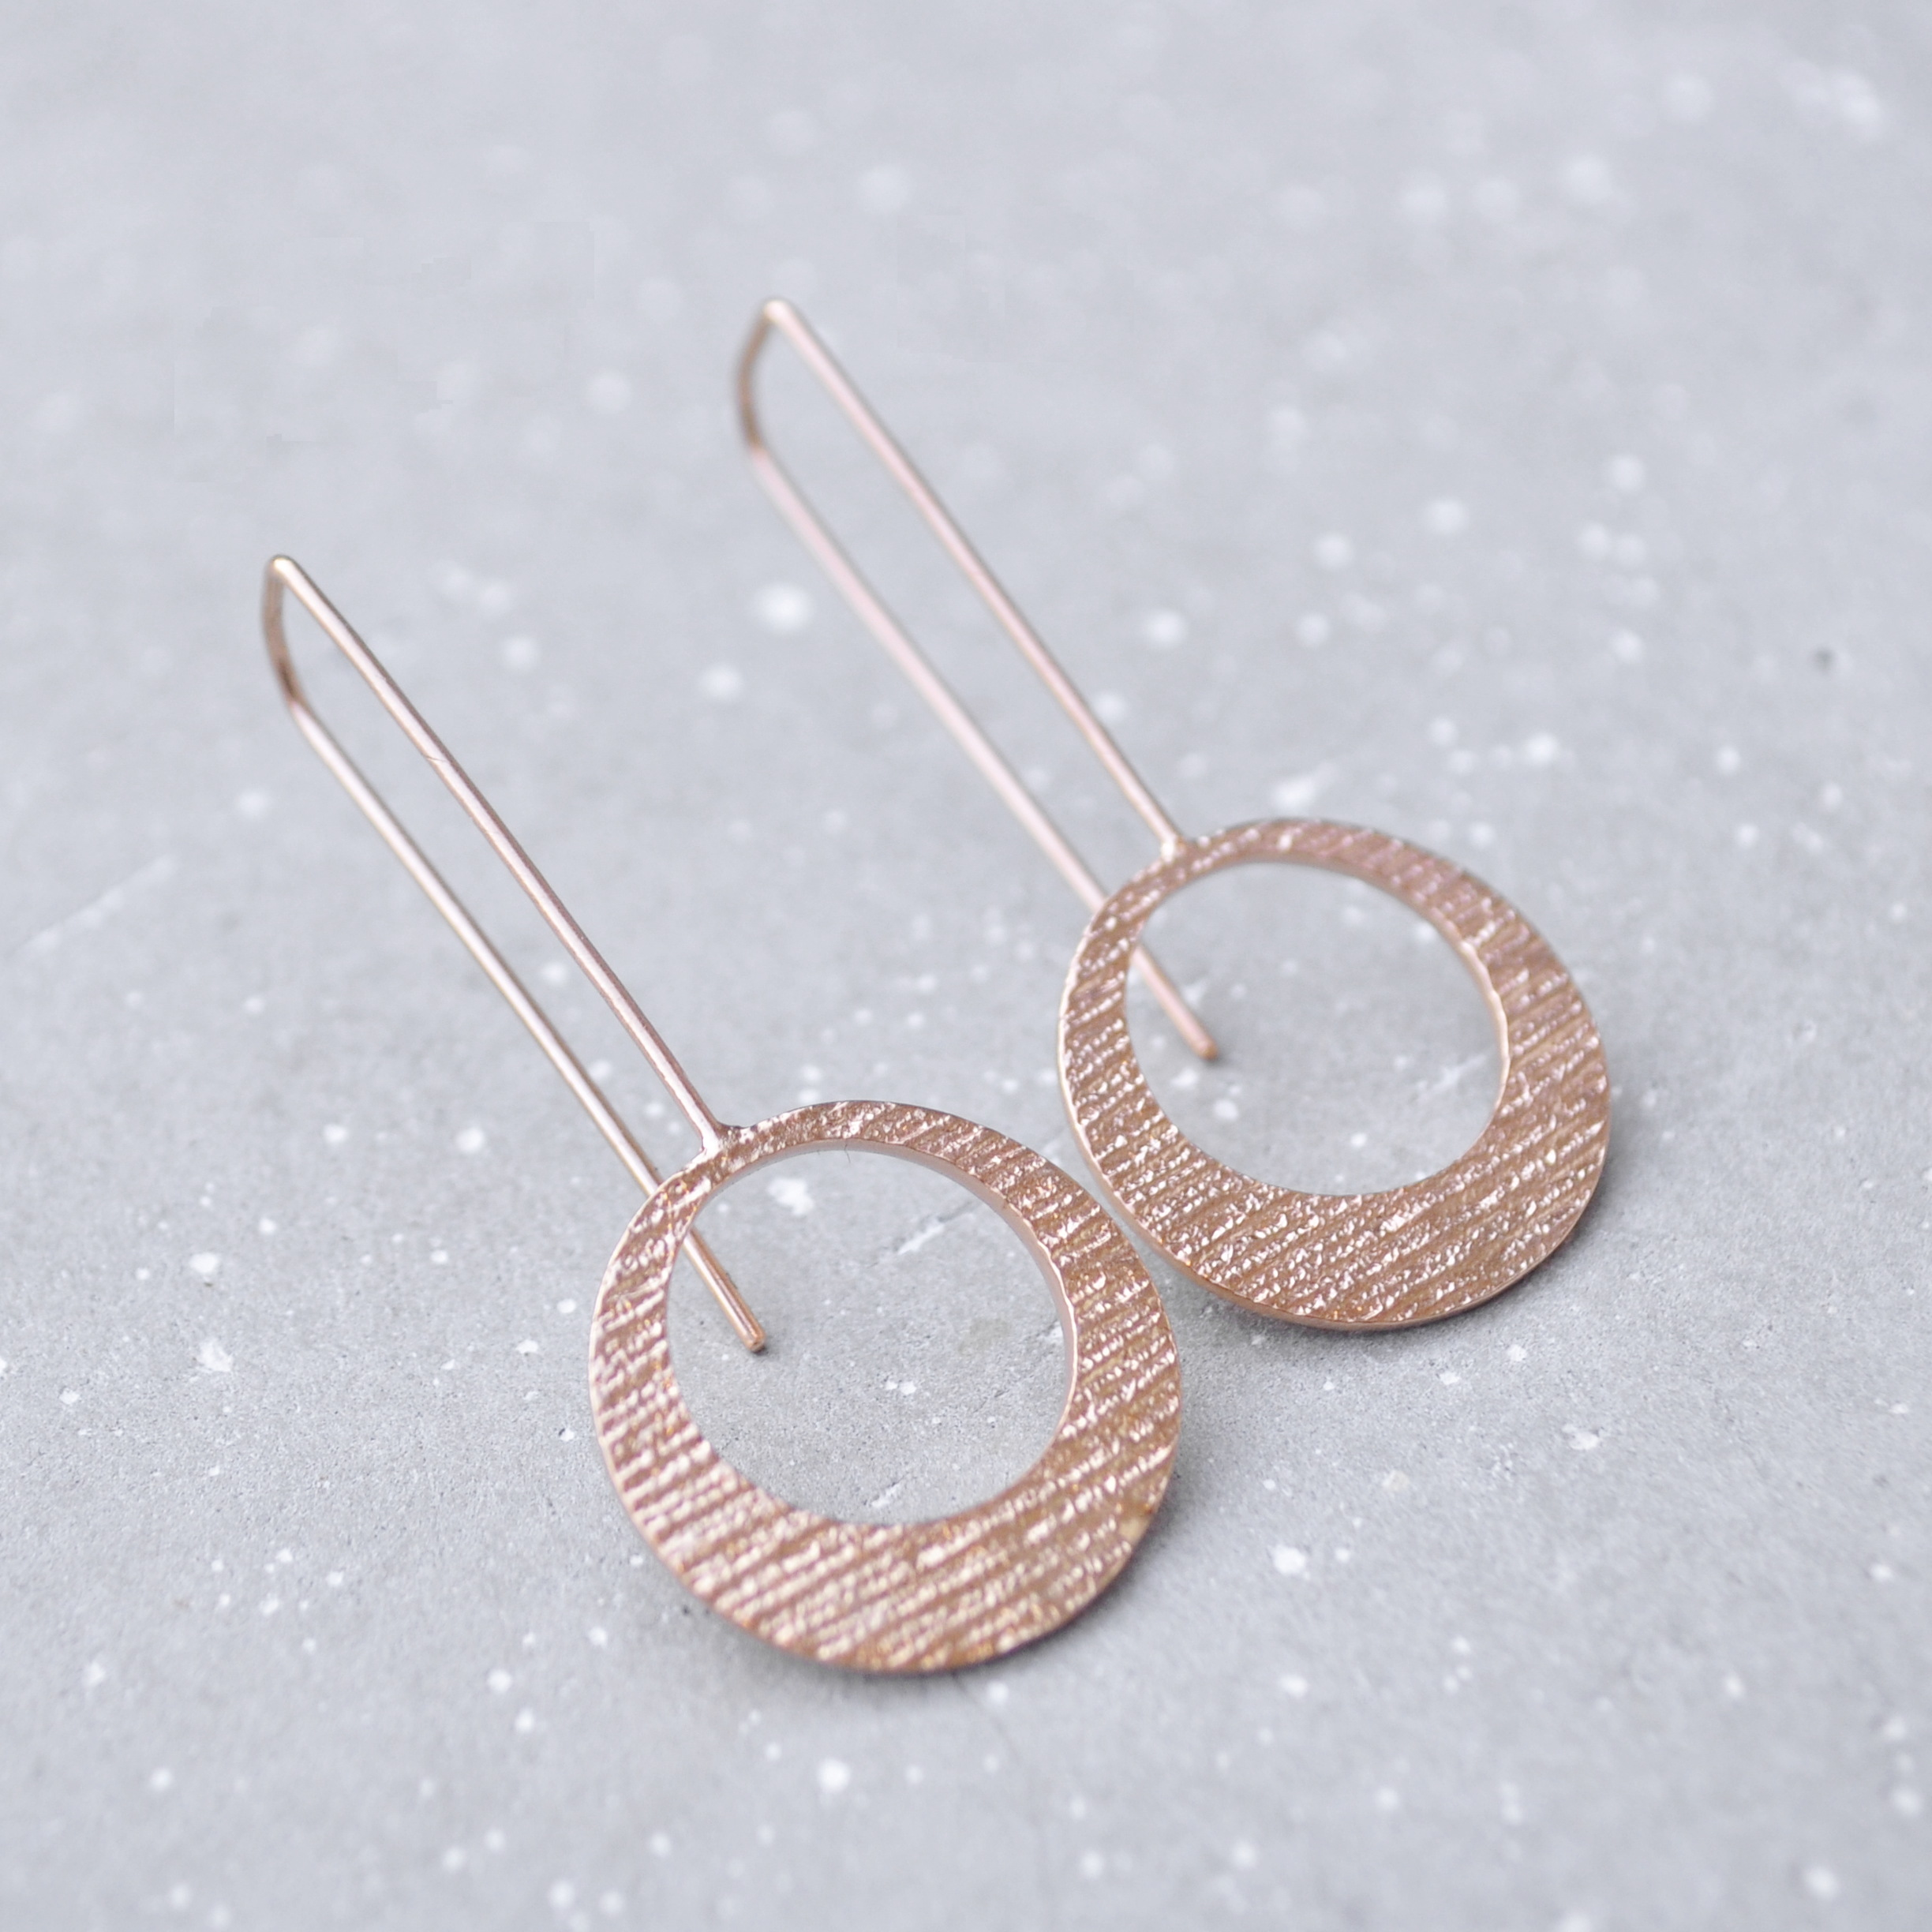 This trendy pair of Hollow Disc Jenna earrings is made of Sterling silver and plated with Rose Gold. This design is available in coco or leaf texture.